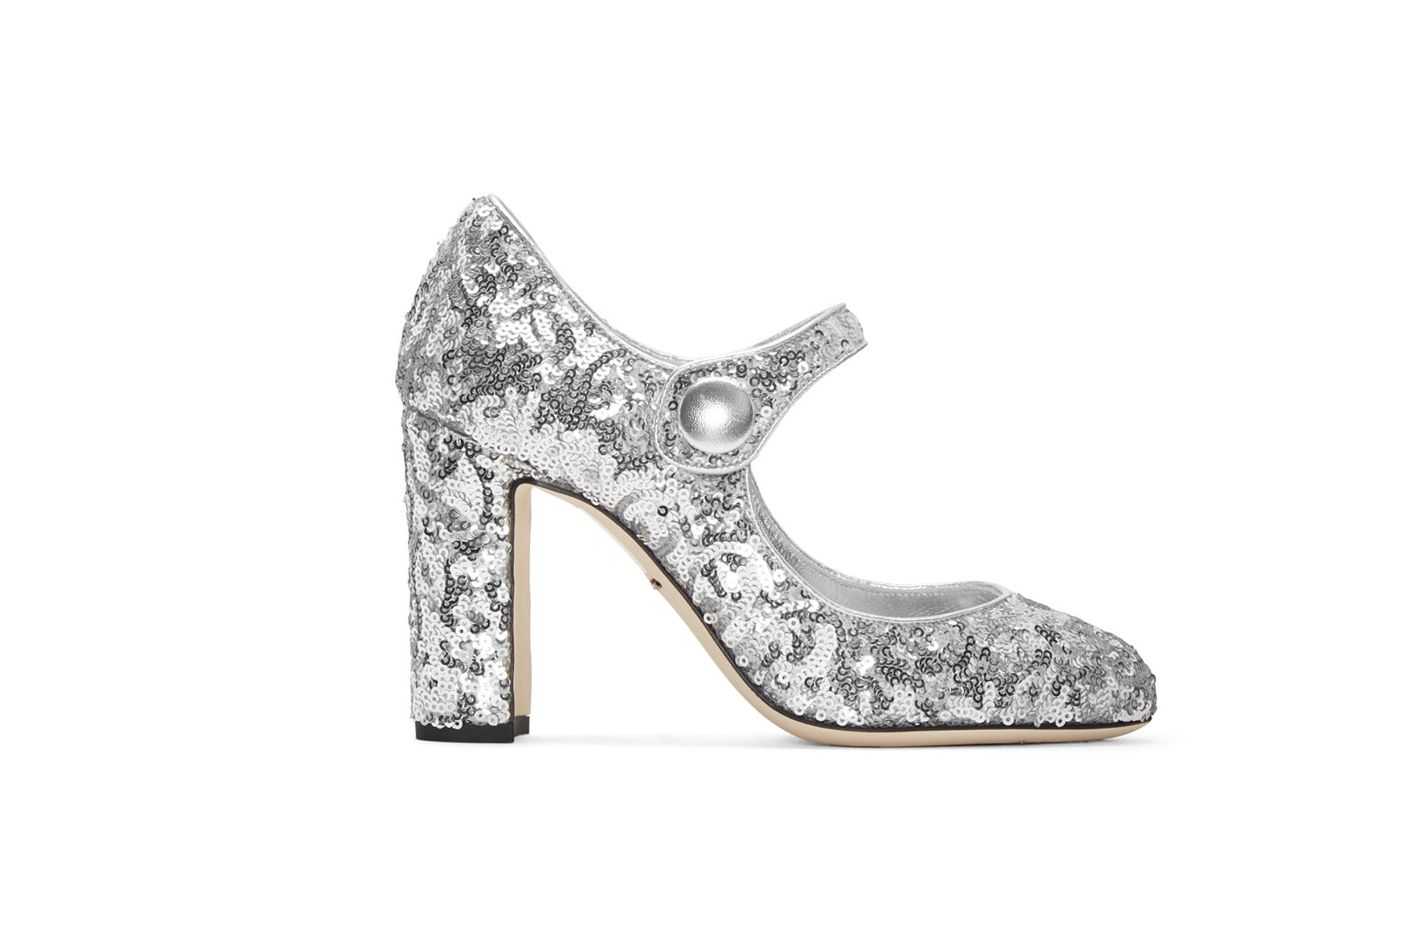 Dolce & Gabbana Silver Sequinned Mary Jane  Heels